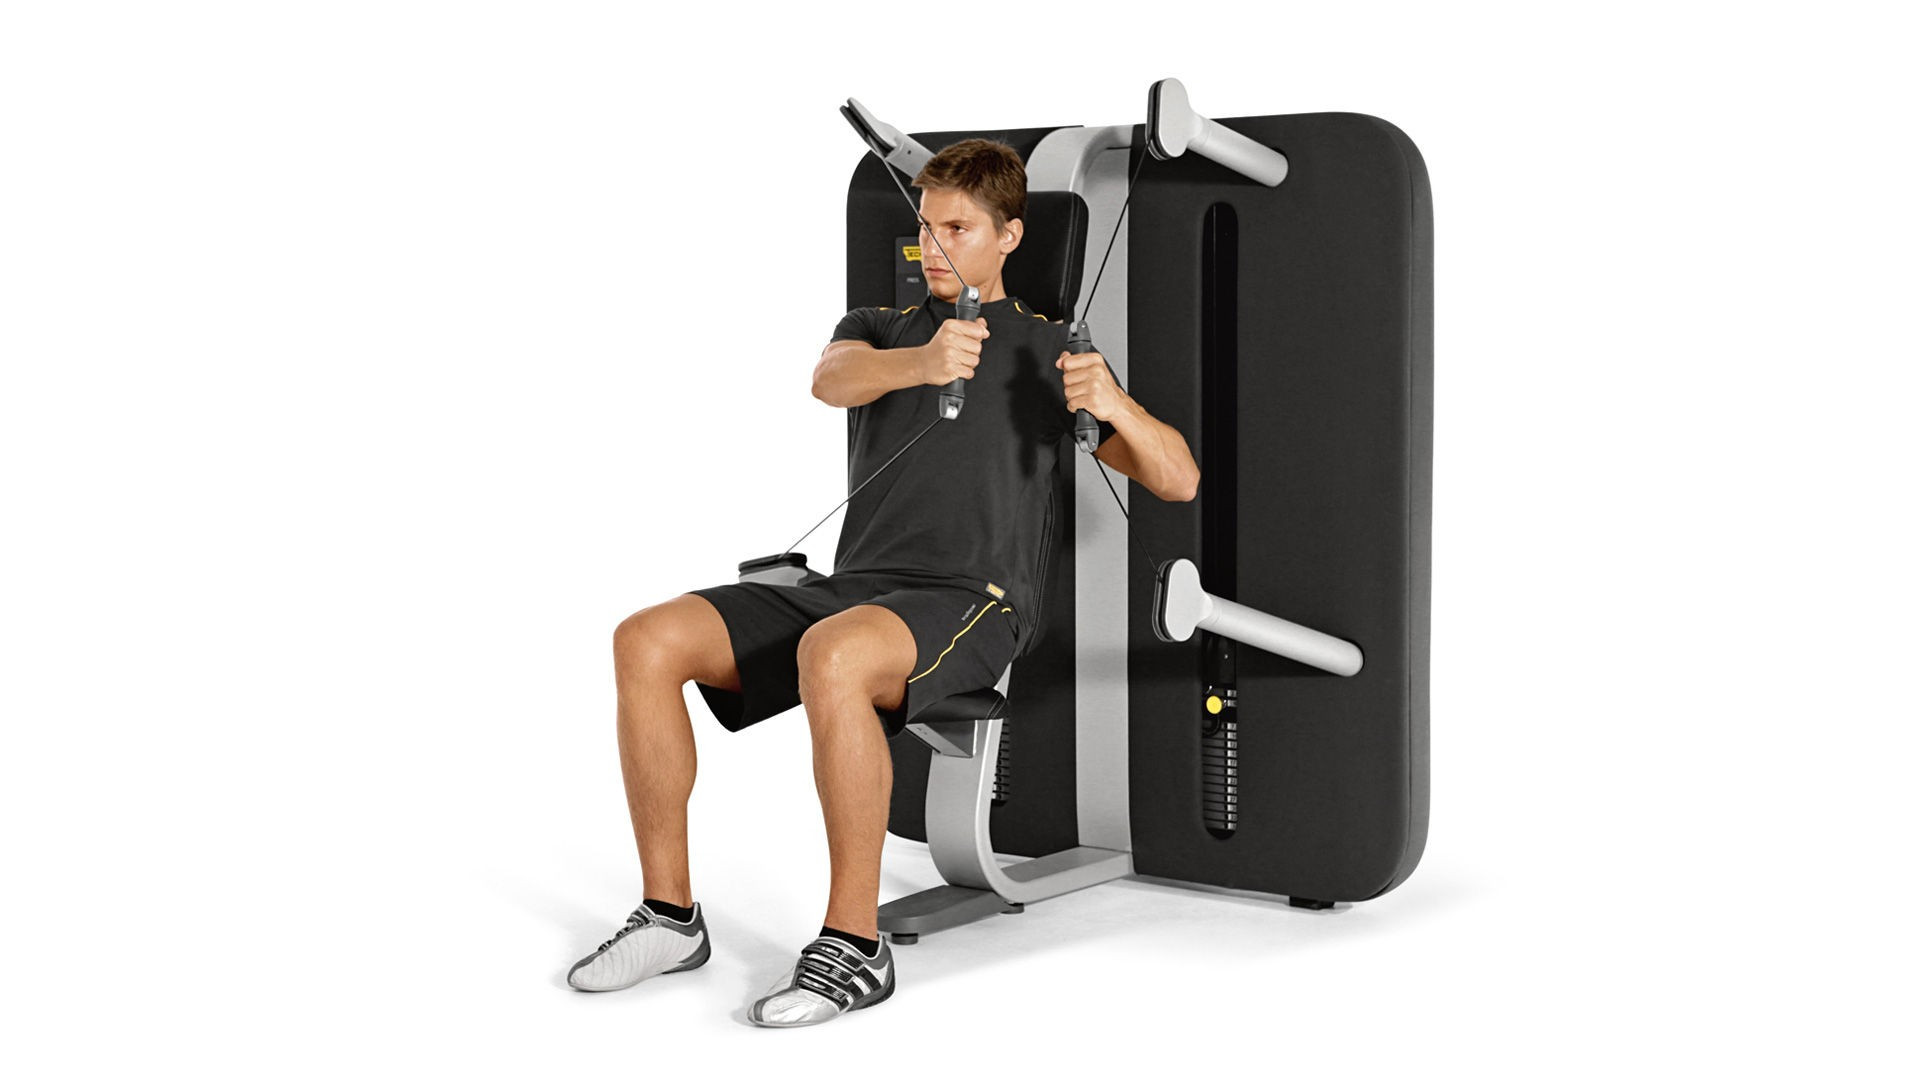 Kinesis seater chest press machine technogym